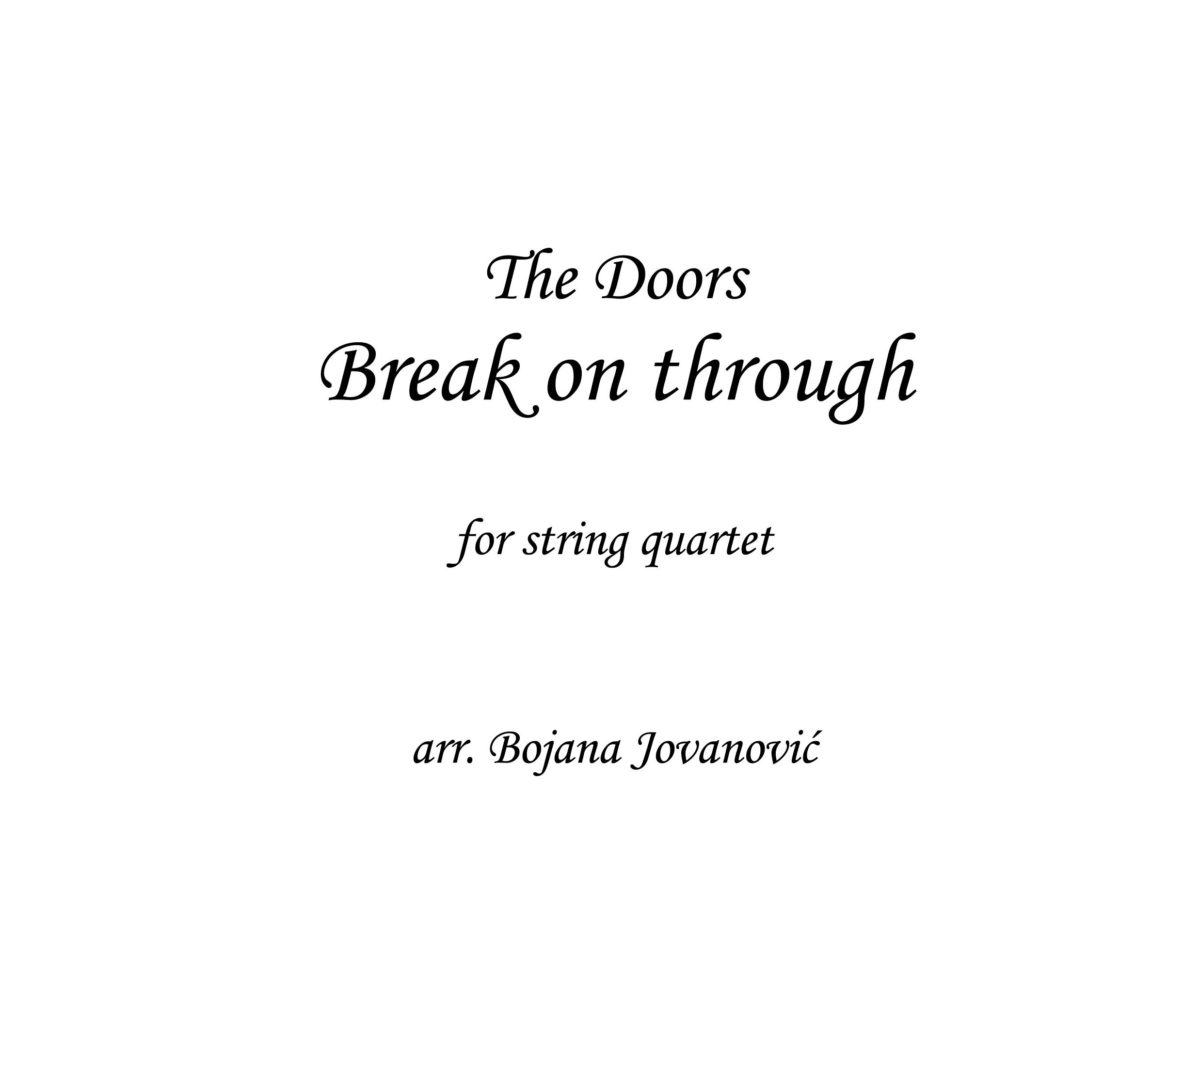 Break on through (The Doors) - Sheet Music